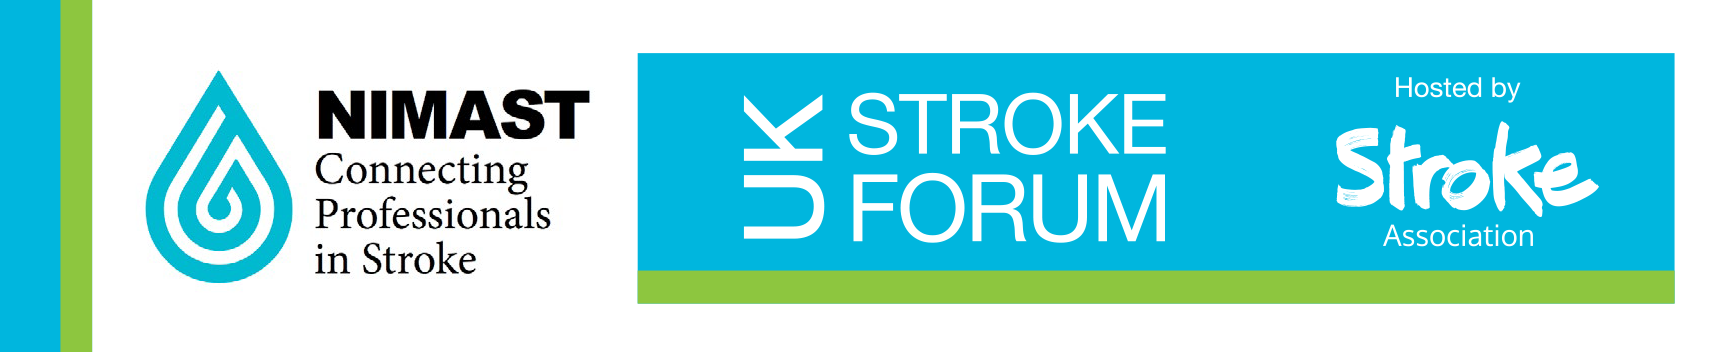 UK Stroke Forum event banner